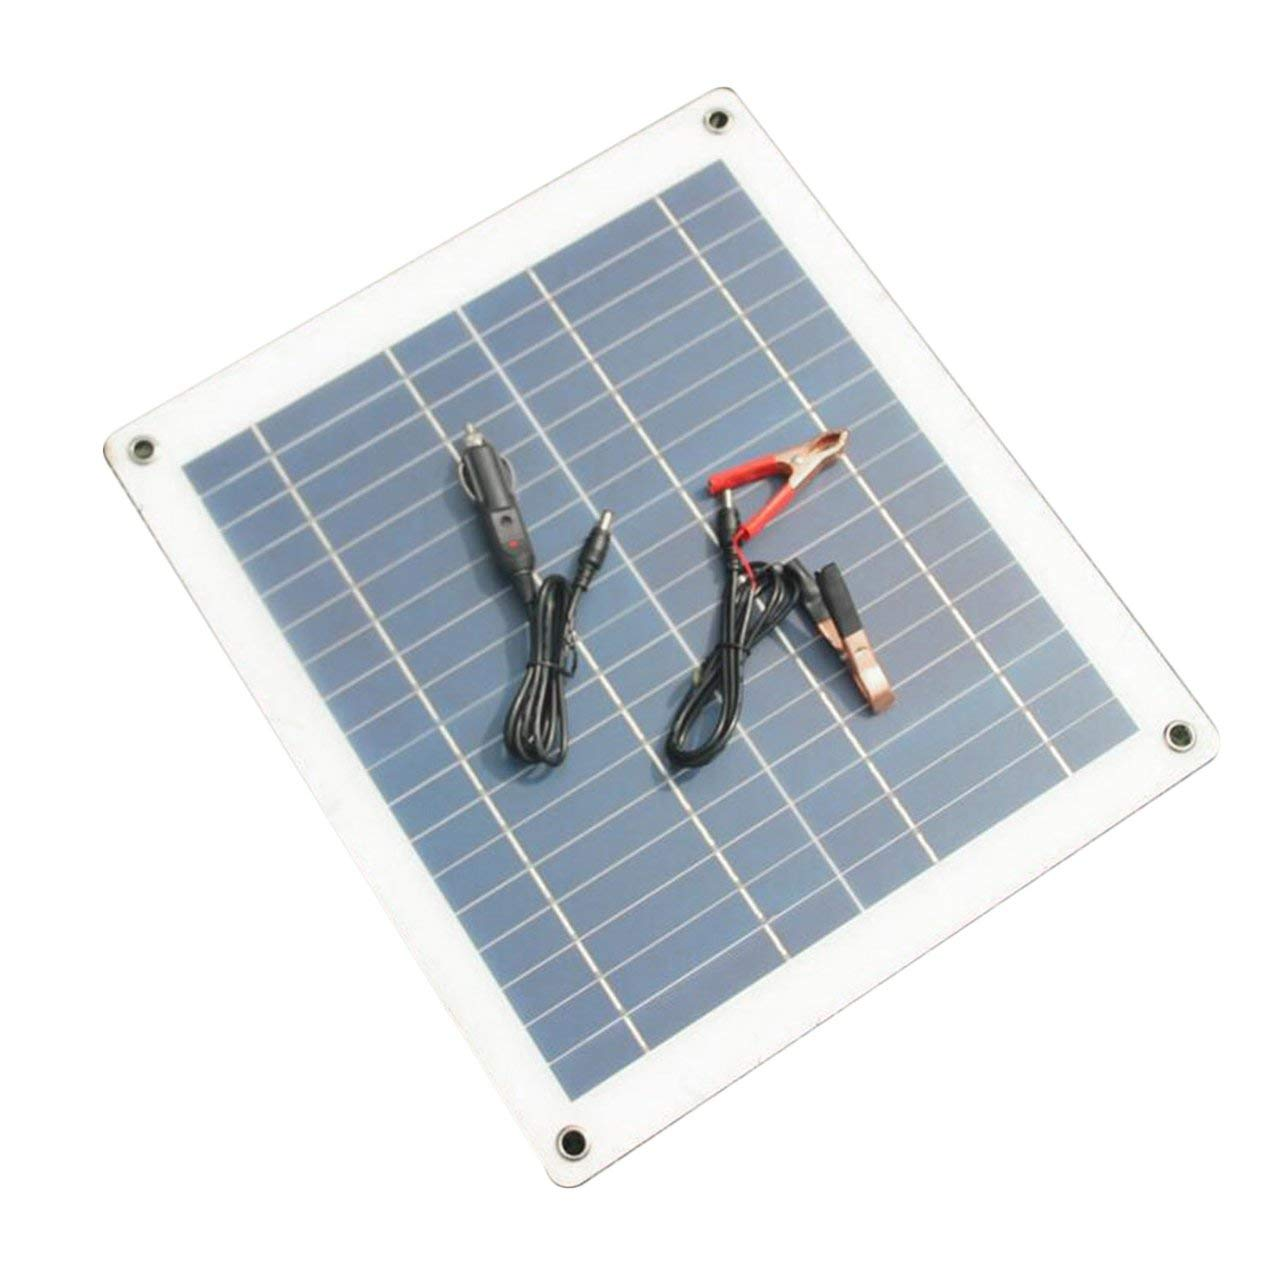 Ironheel 30W 18V Solar Panel Charger Semi-Flexible Solar Panel High Efficiency Battery Charger with Alligator Clip Wire for Car Boat